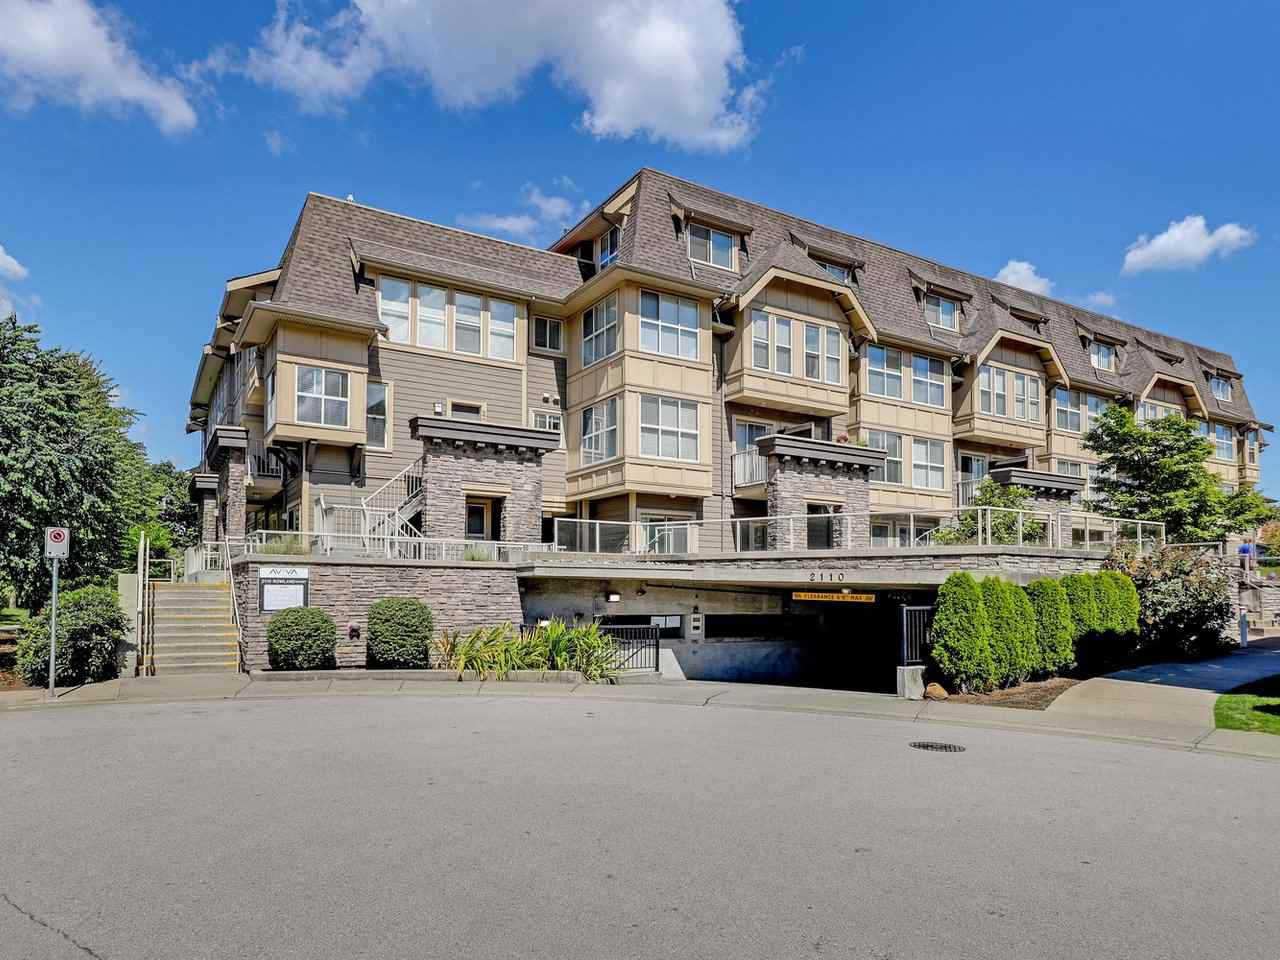 Main Photo: 114 2110 ROWLAND Street in Port Coquitlam: Central Pt Coquitlam Condo for sale : MLS®# R2500858